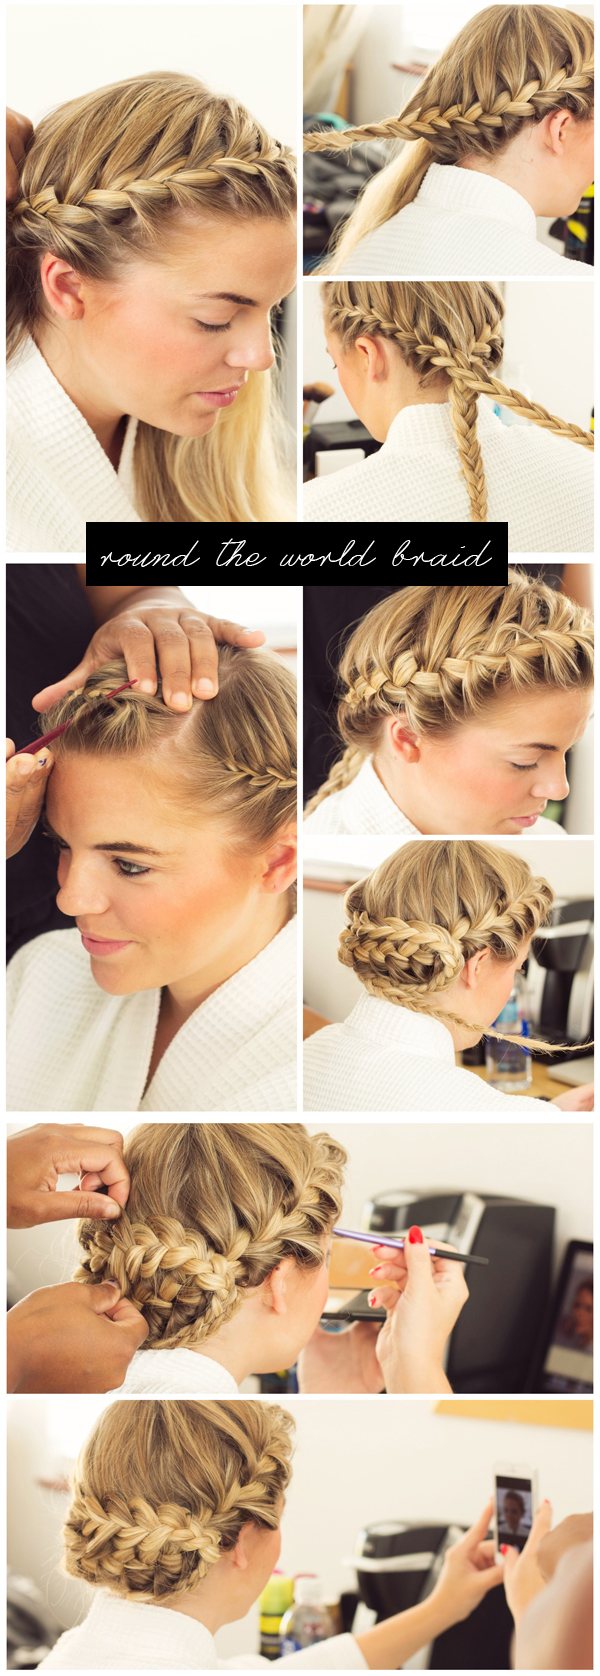 Round the World Braid Steps